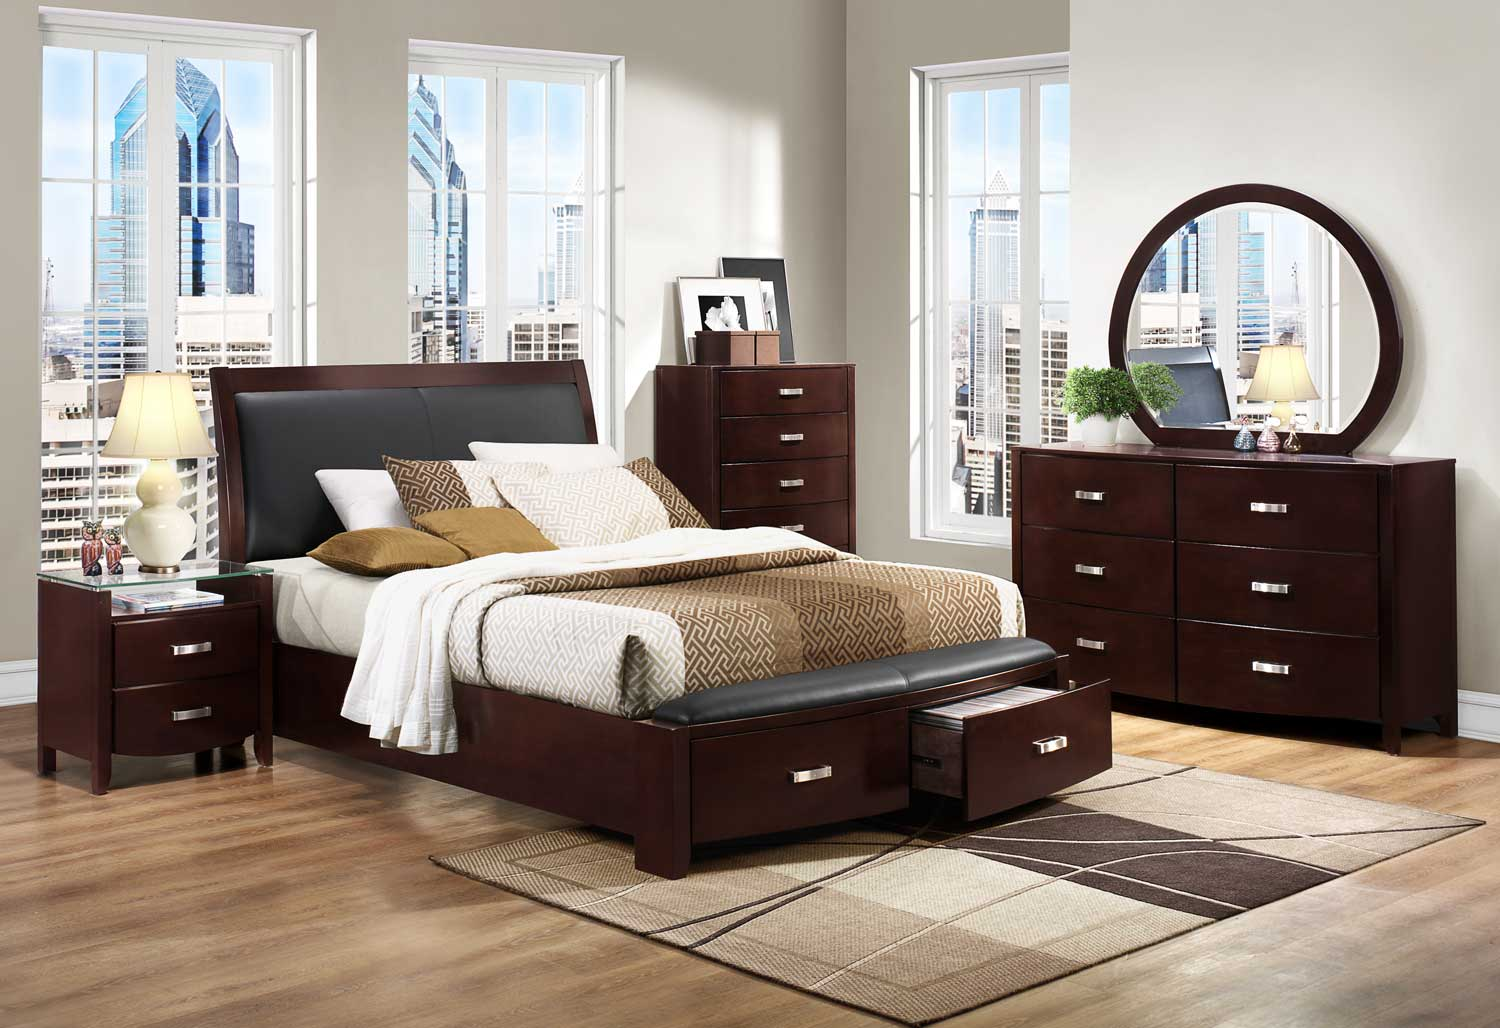 Marvelous Homelegance Lyric Platform Bedroom Set   Dark Espresso